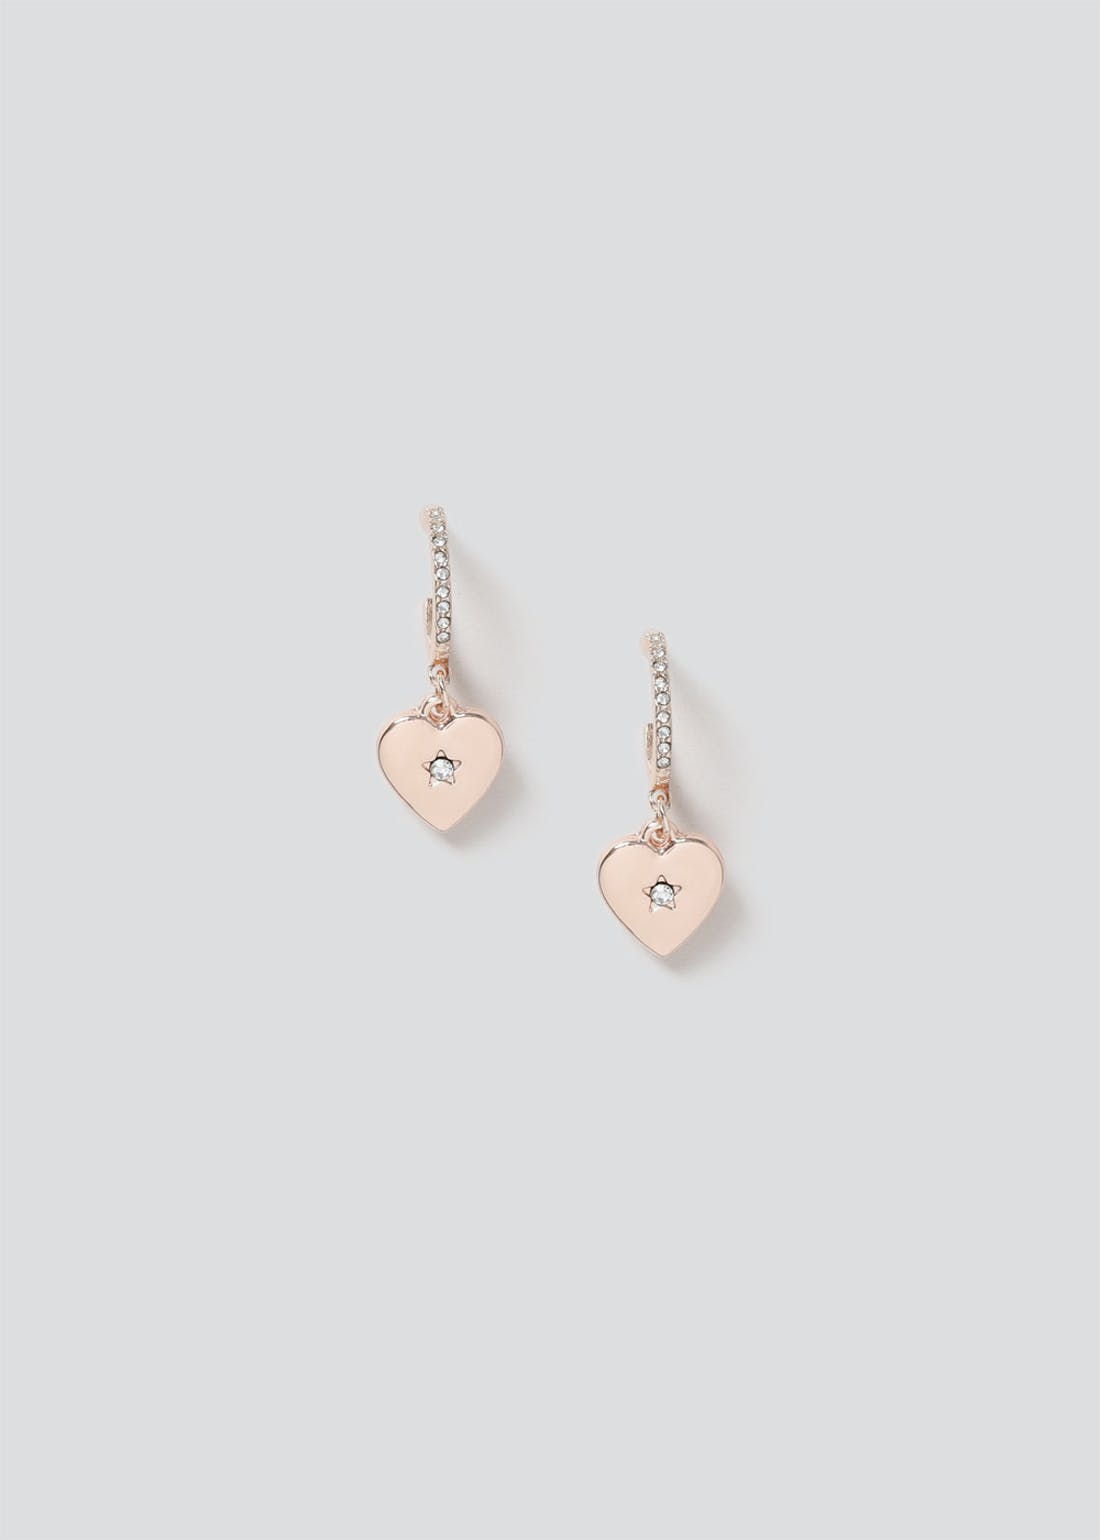 Puff Heart Earrings.